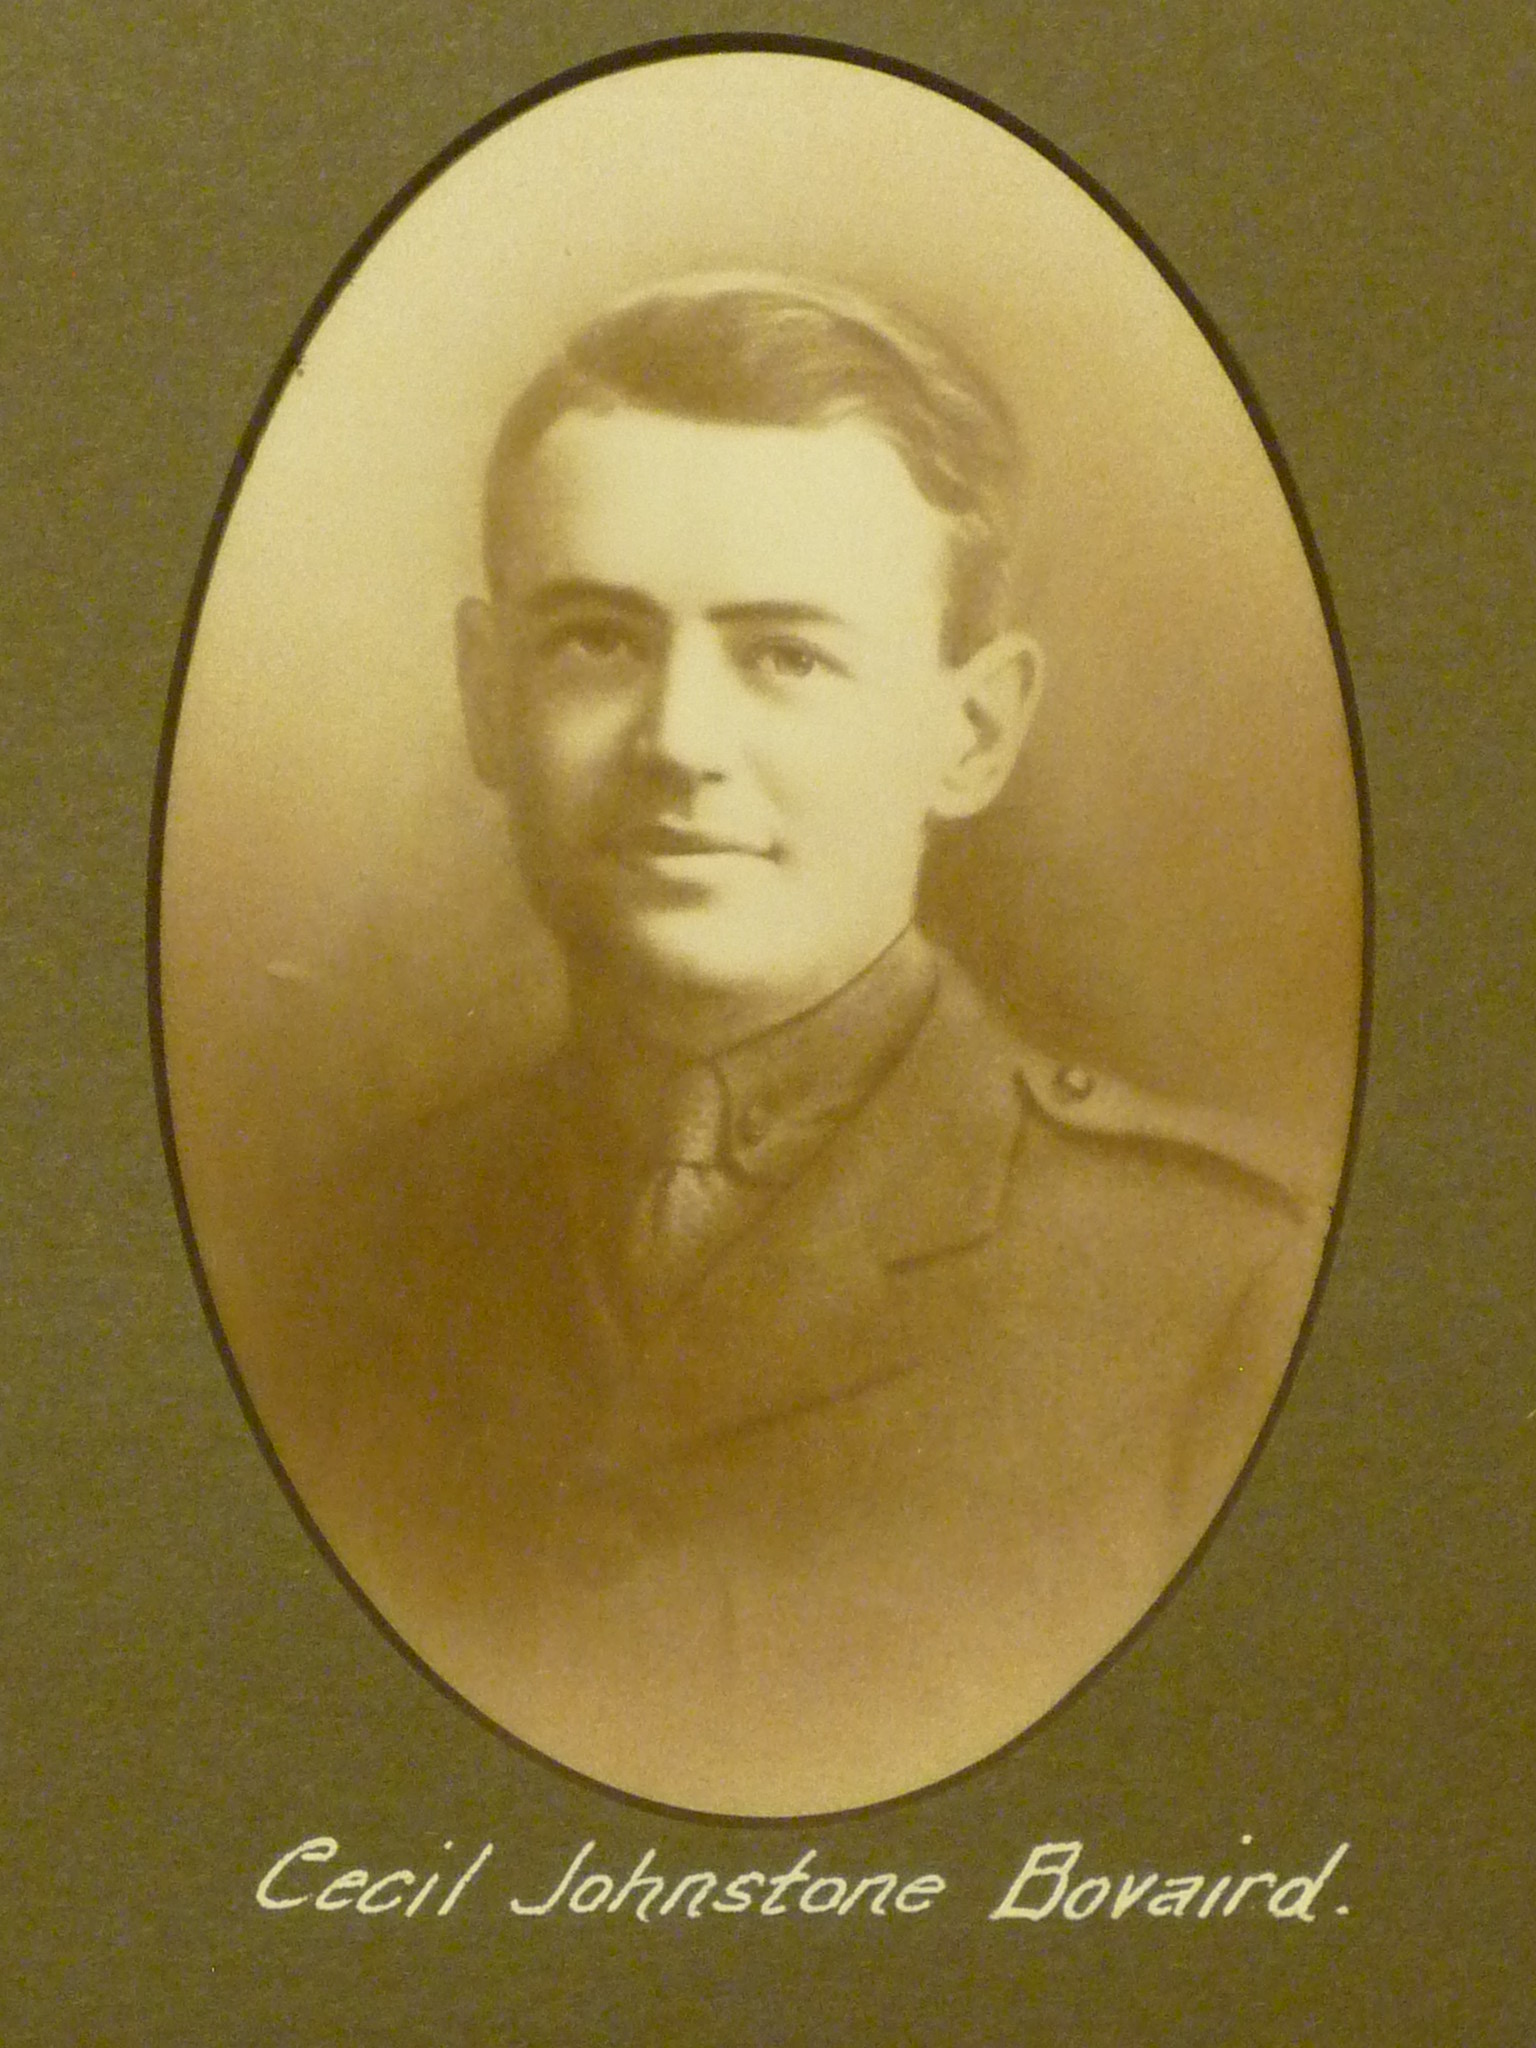 Photo of Cecil Bovaird– This image comes from a large framed tribute in St. John's Presbyterian Church, Broadview Avenue, Toronto. Ontario Canada.  He and thirty-two other men are remembered here for their service in WWI.